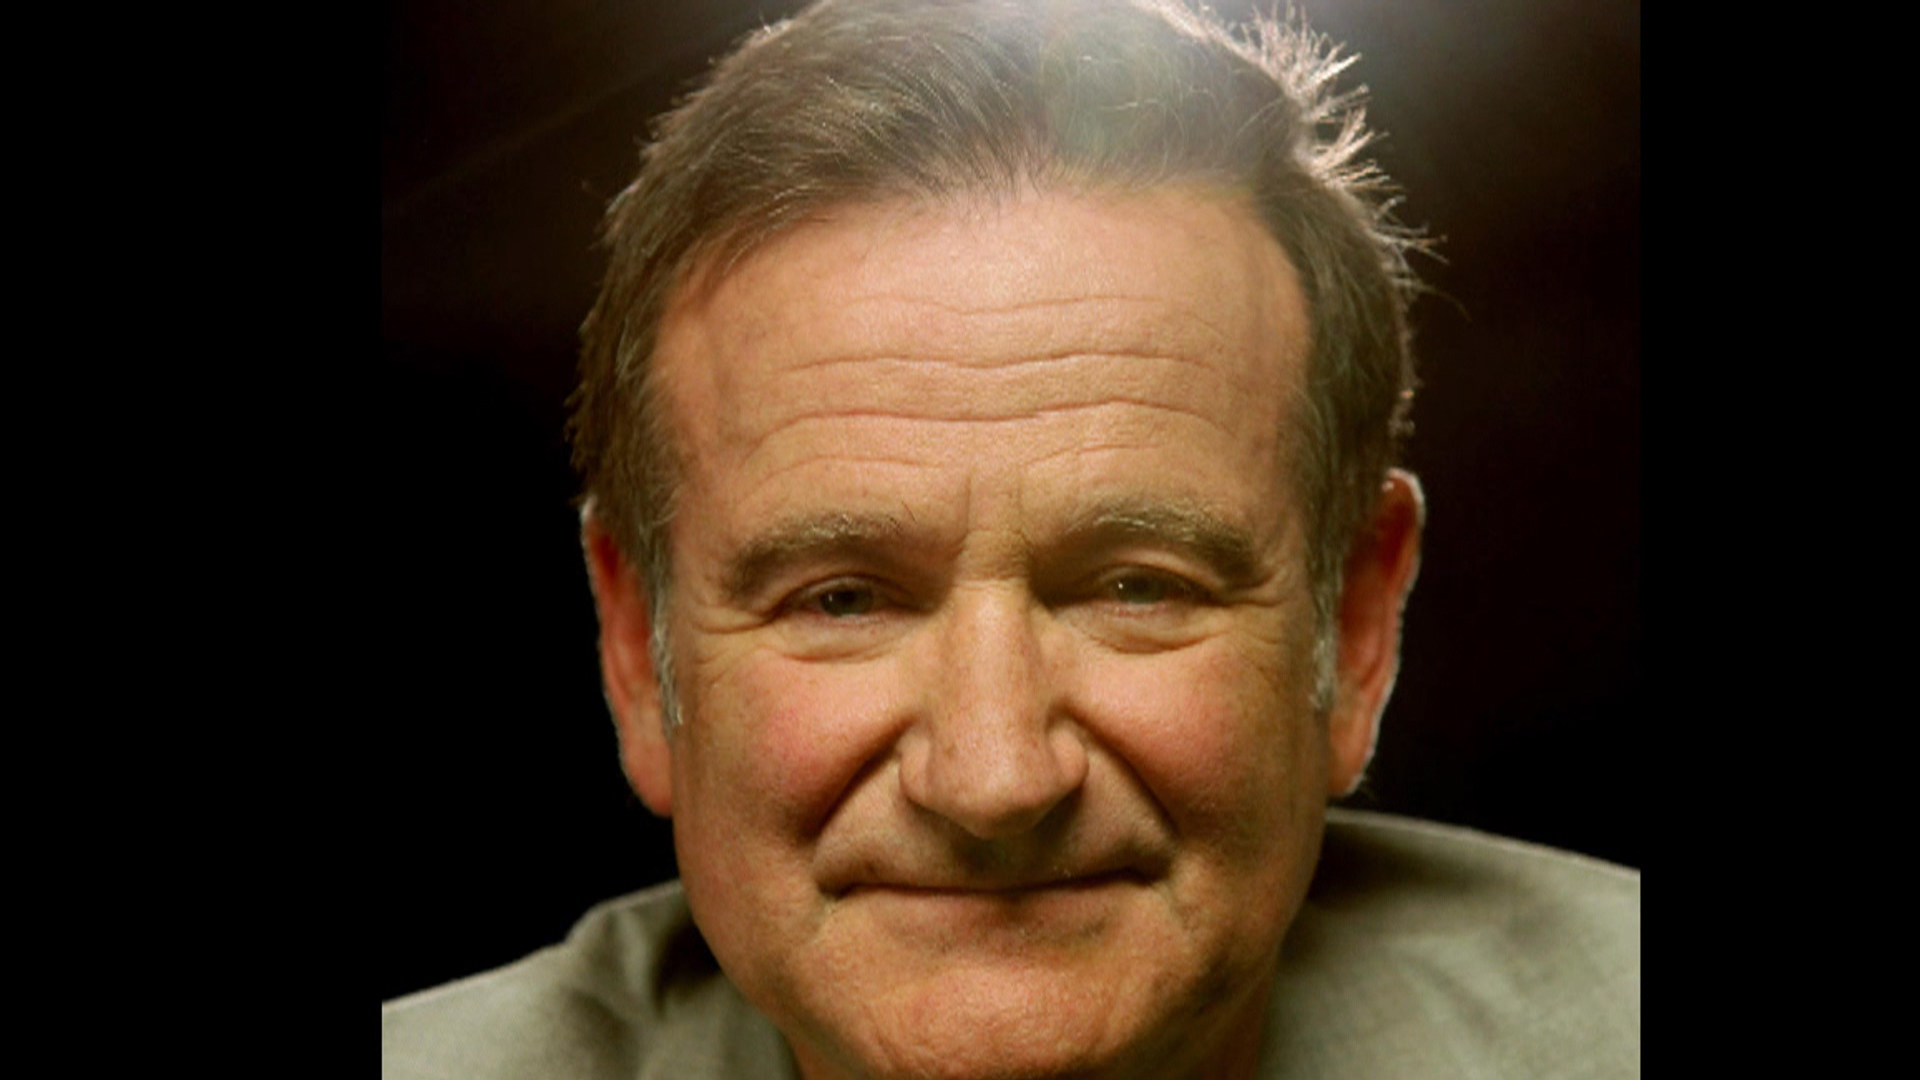 Robin Williams Death Inspires 'Coming Out' About Depression